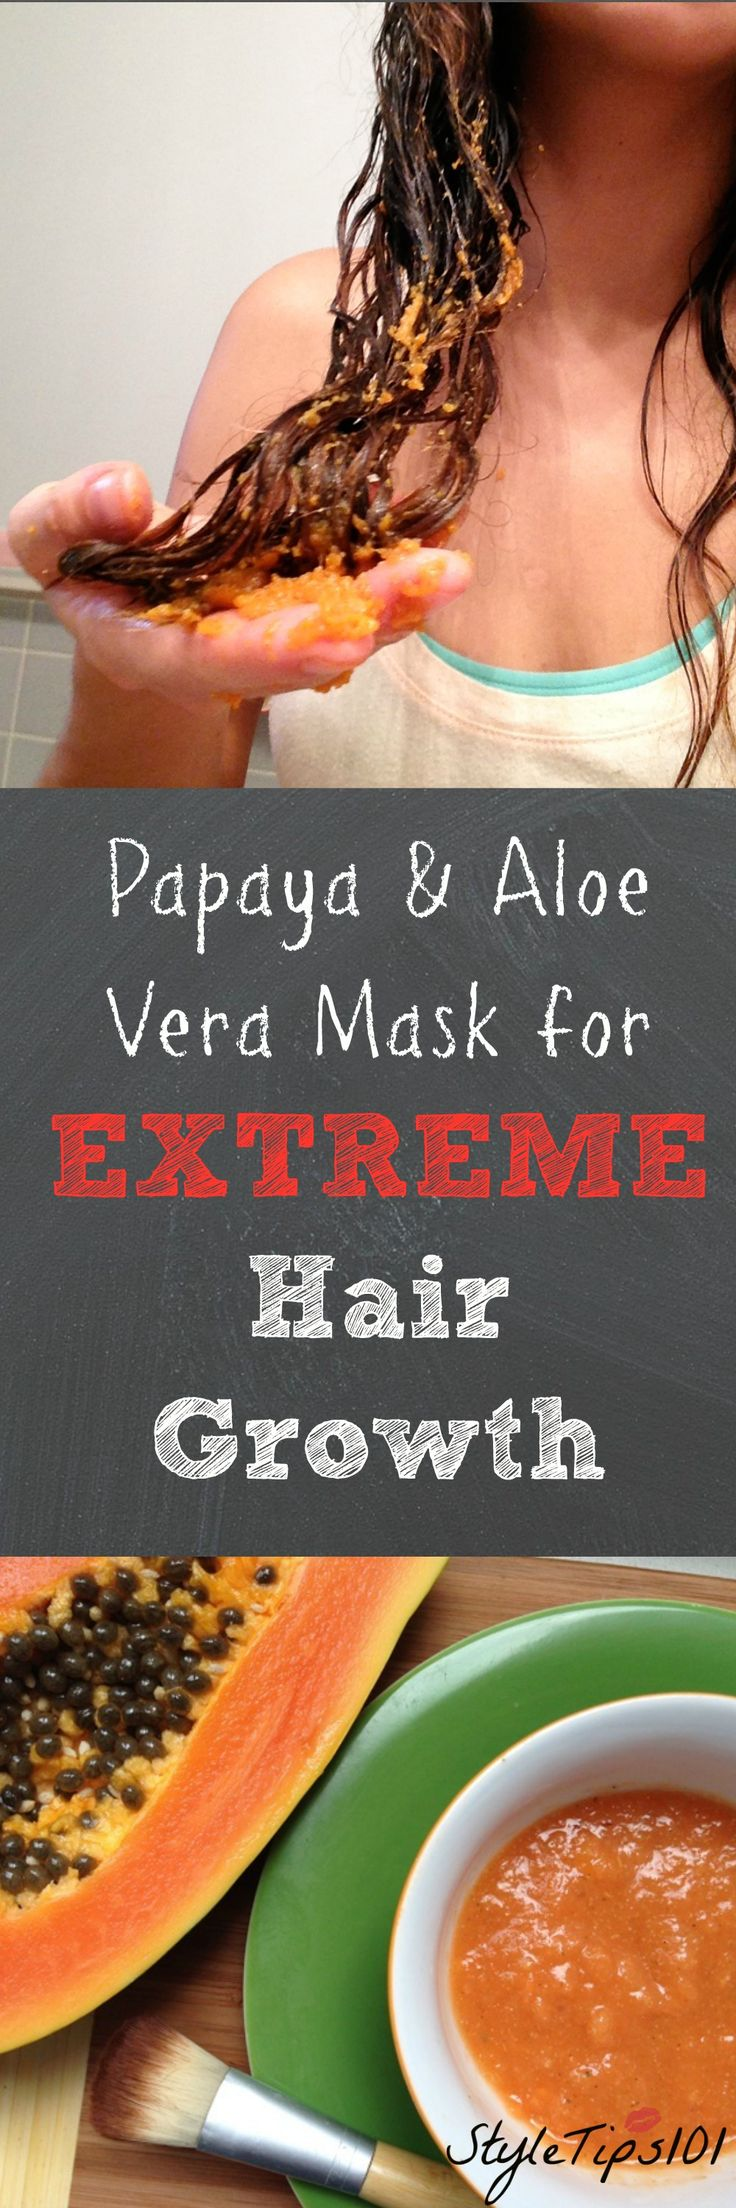 Put this on your hair for extreme hair growth: half a papaya + aloe vera gel (from fresh stalk). Mix in food processor and apply to dry hair.